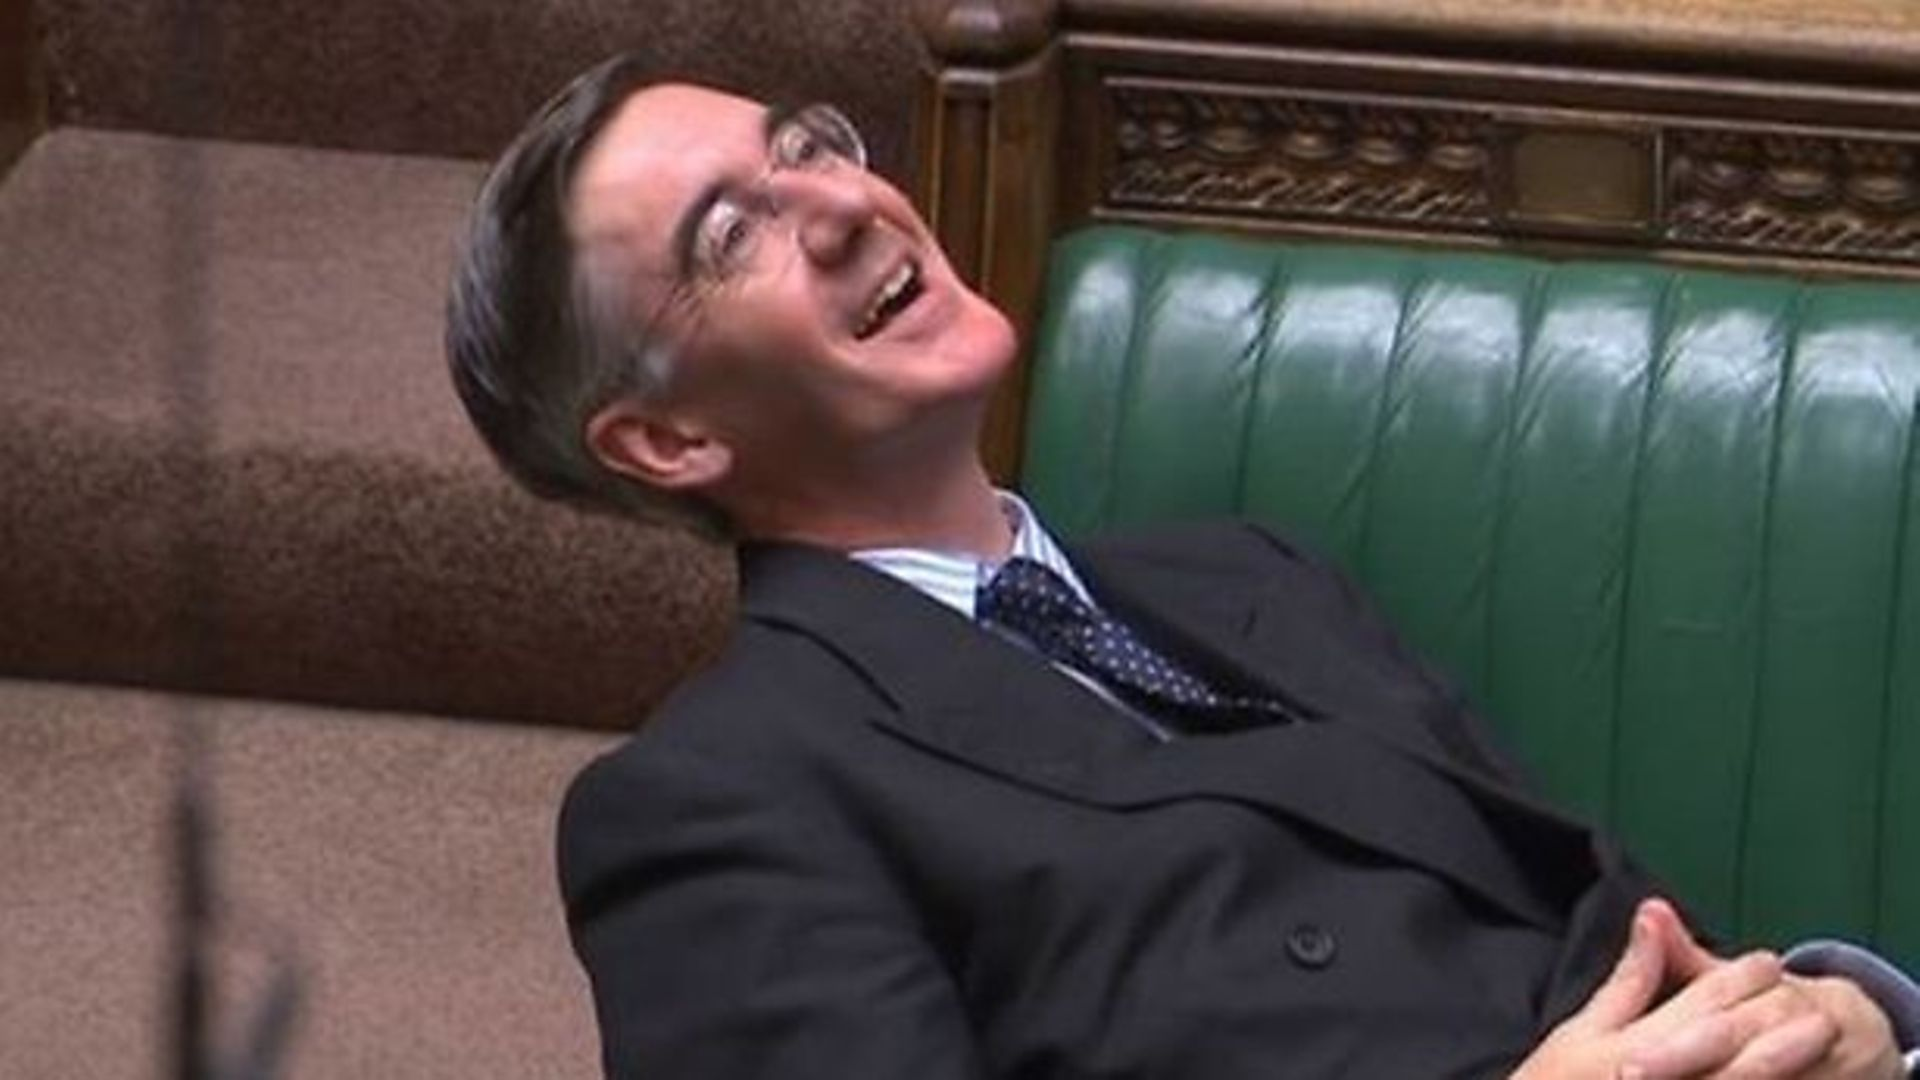 Jacob Rees-Mogg in the House of Commons - Credit: Parliament TV